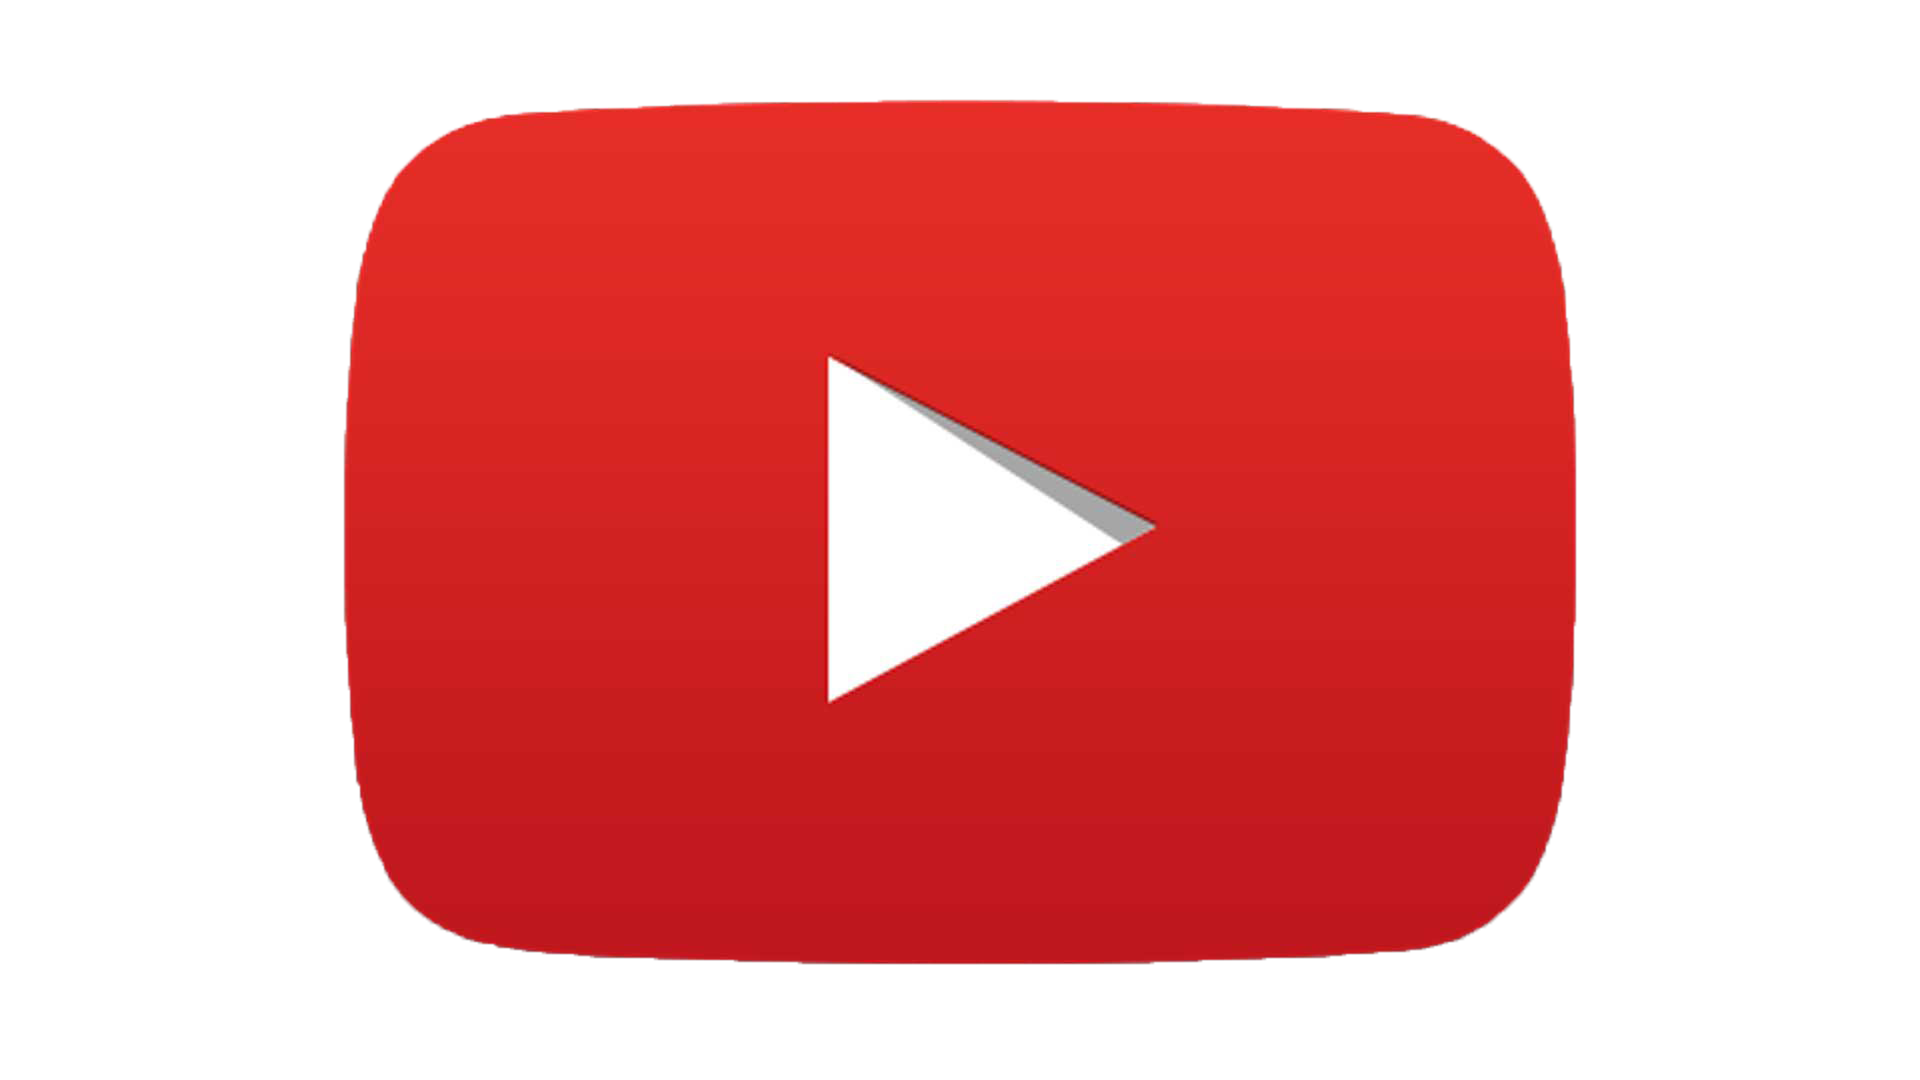 Play Graphic Button Youtube Subscribe Designer Logo PNG Image